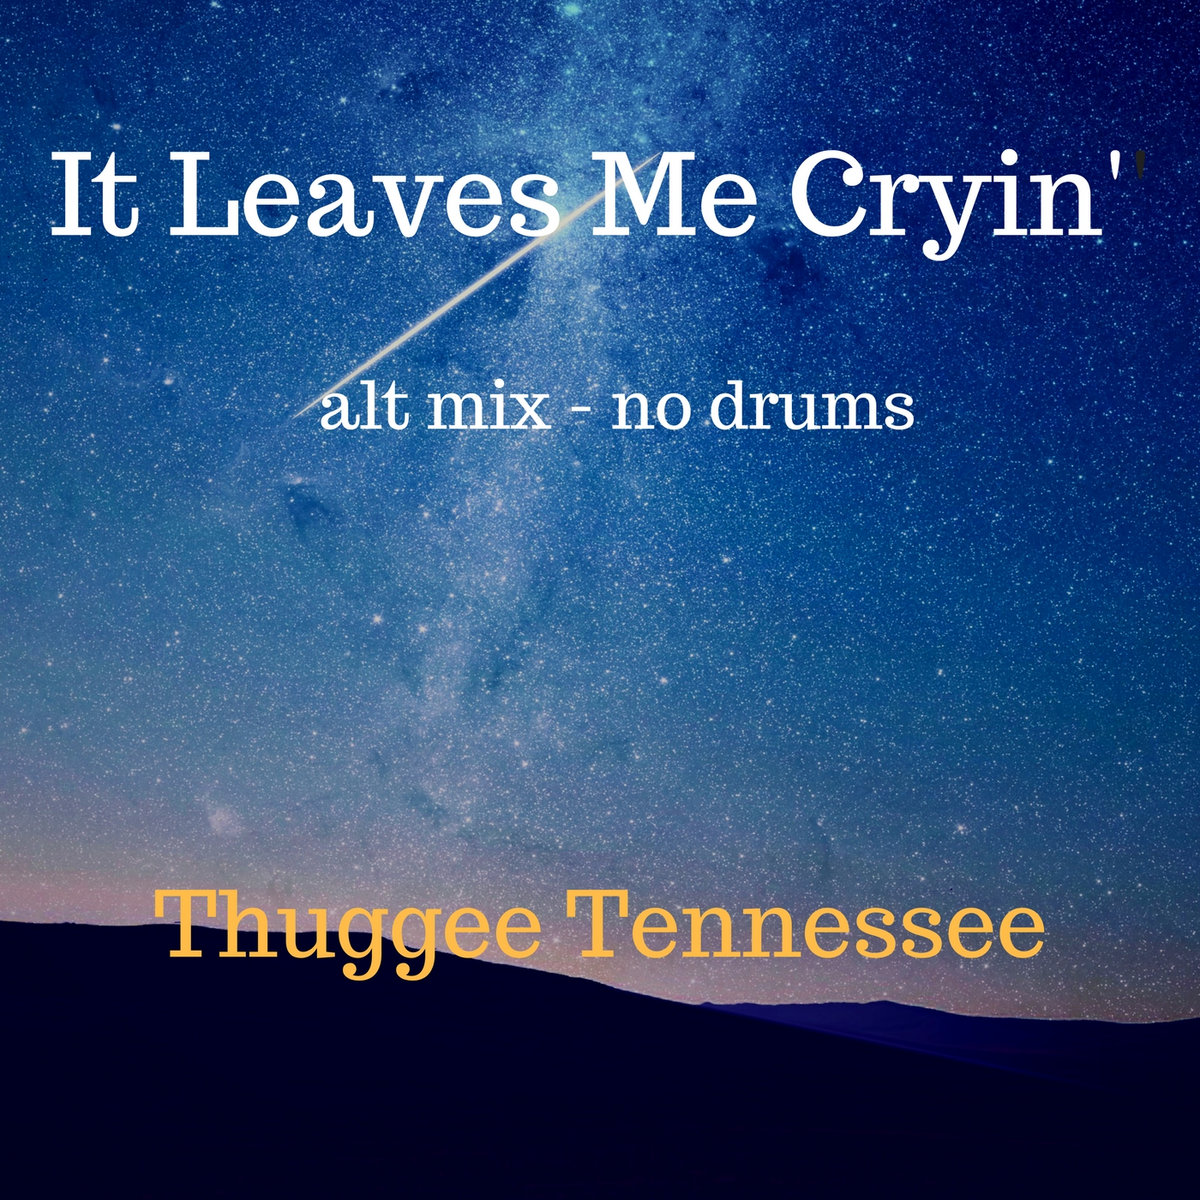 It Leaves Me Cryin' (alt mix - no drums) - FREE DOWNLOAD by Thuggee Tennessee